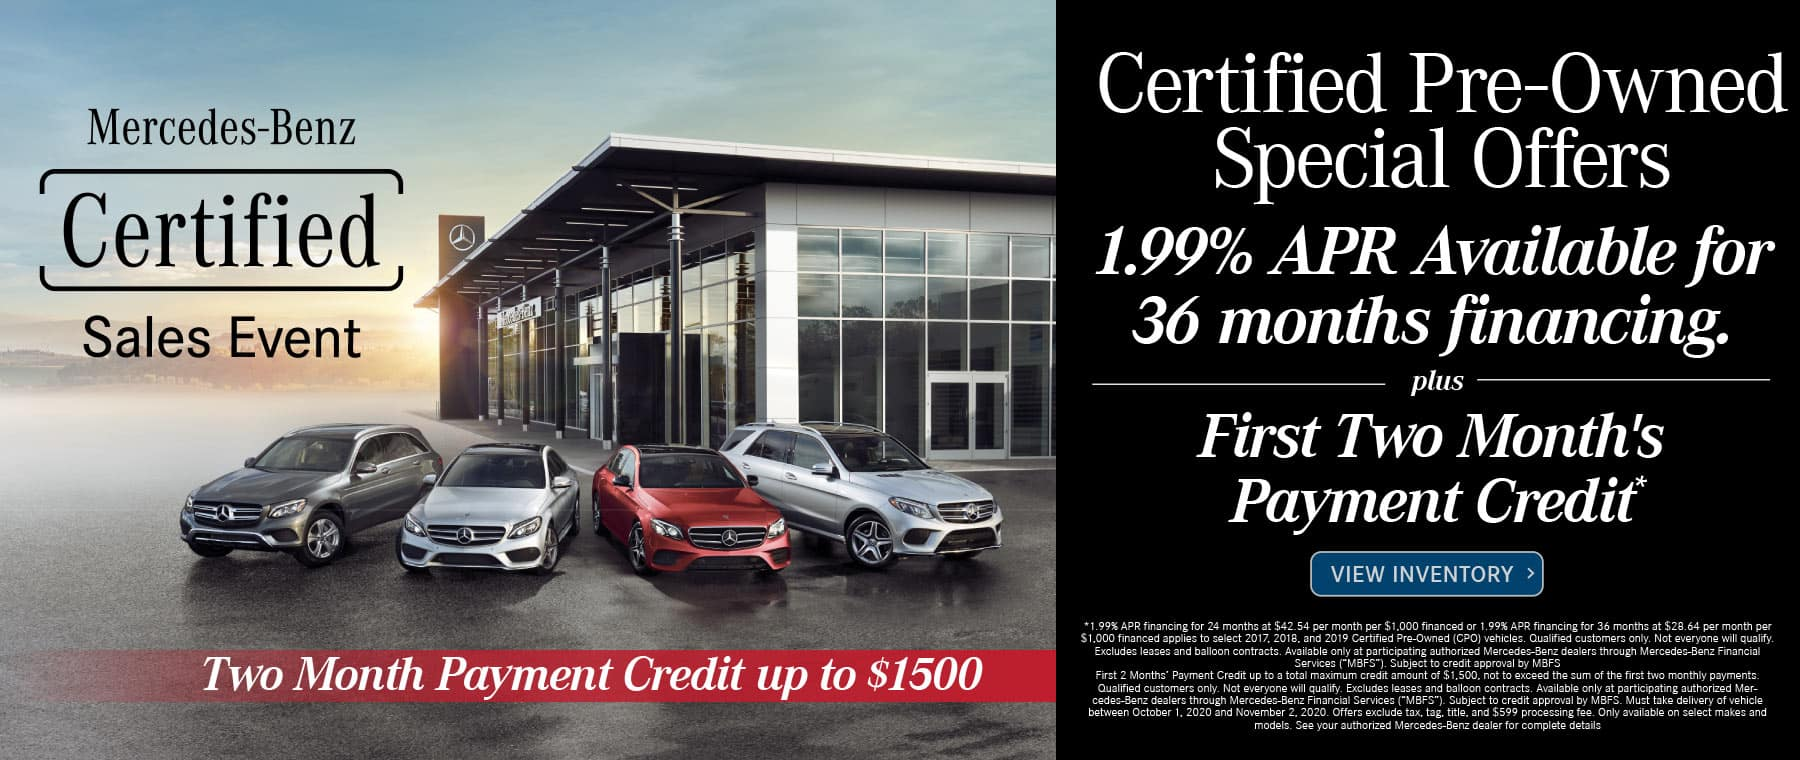 Mercedes-Benz Certified Pre-OWned Event. 1.99% APR Available for 36 months financing. Plus First 2 month's payment credit up to $1500. View Inventory